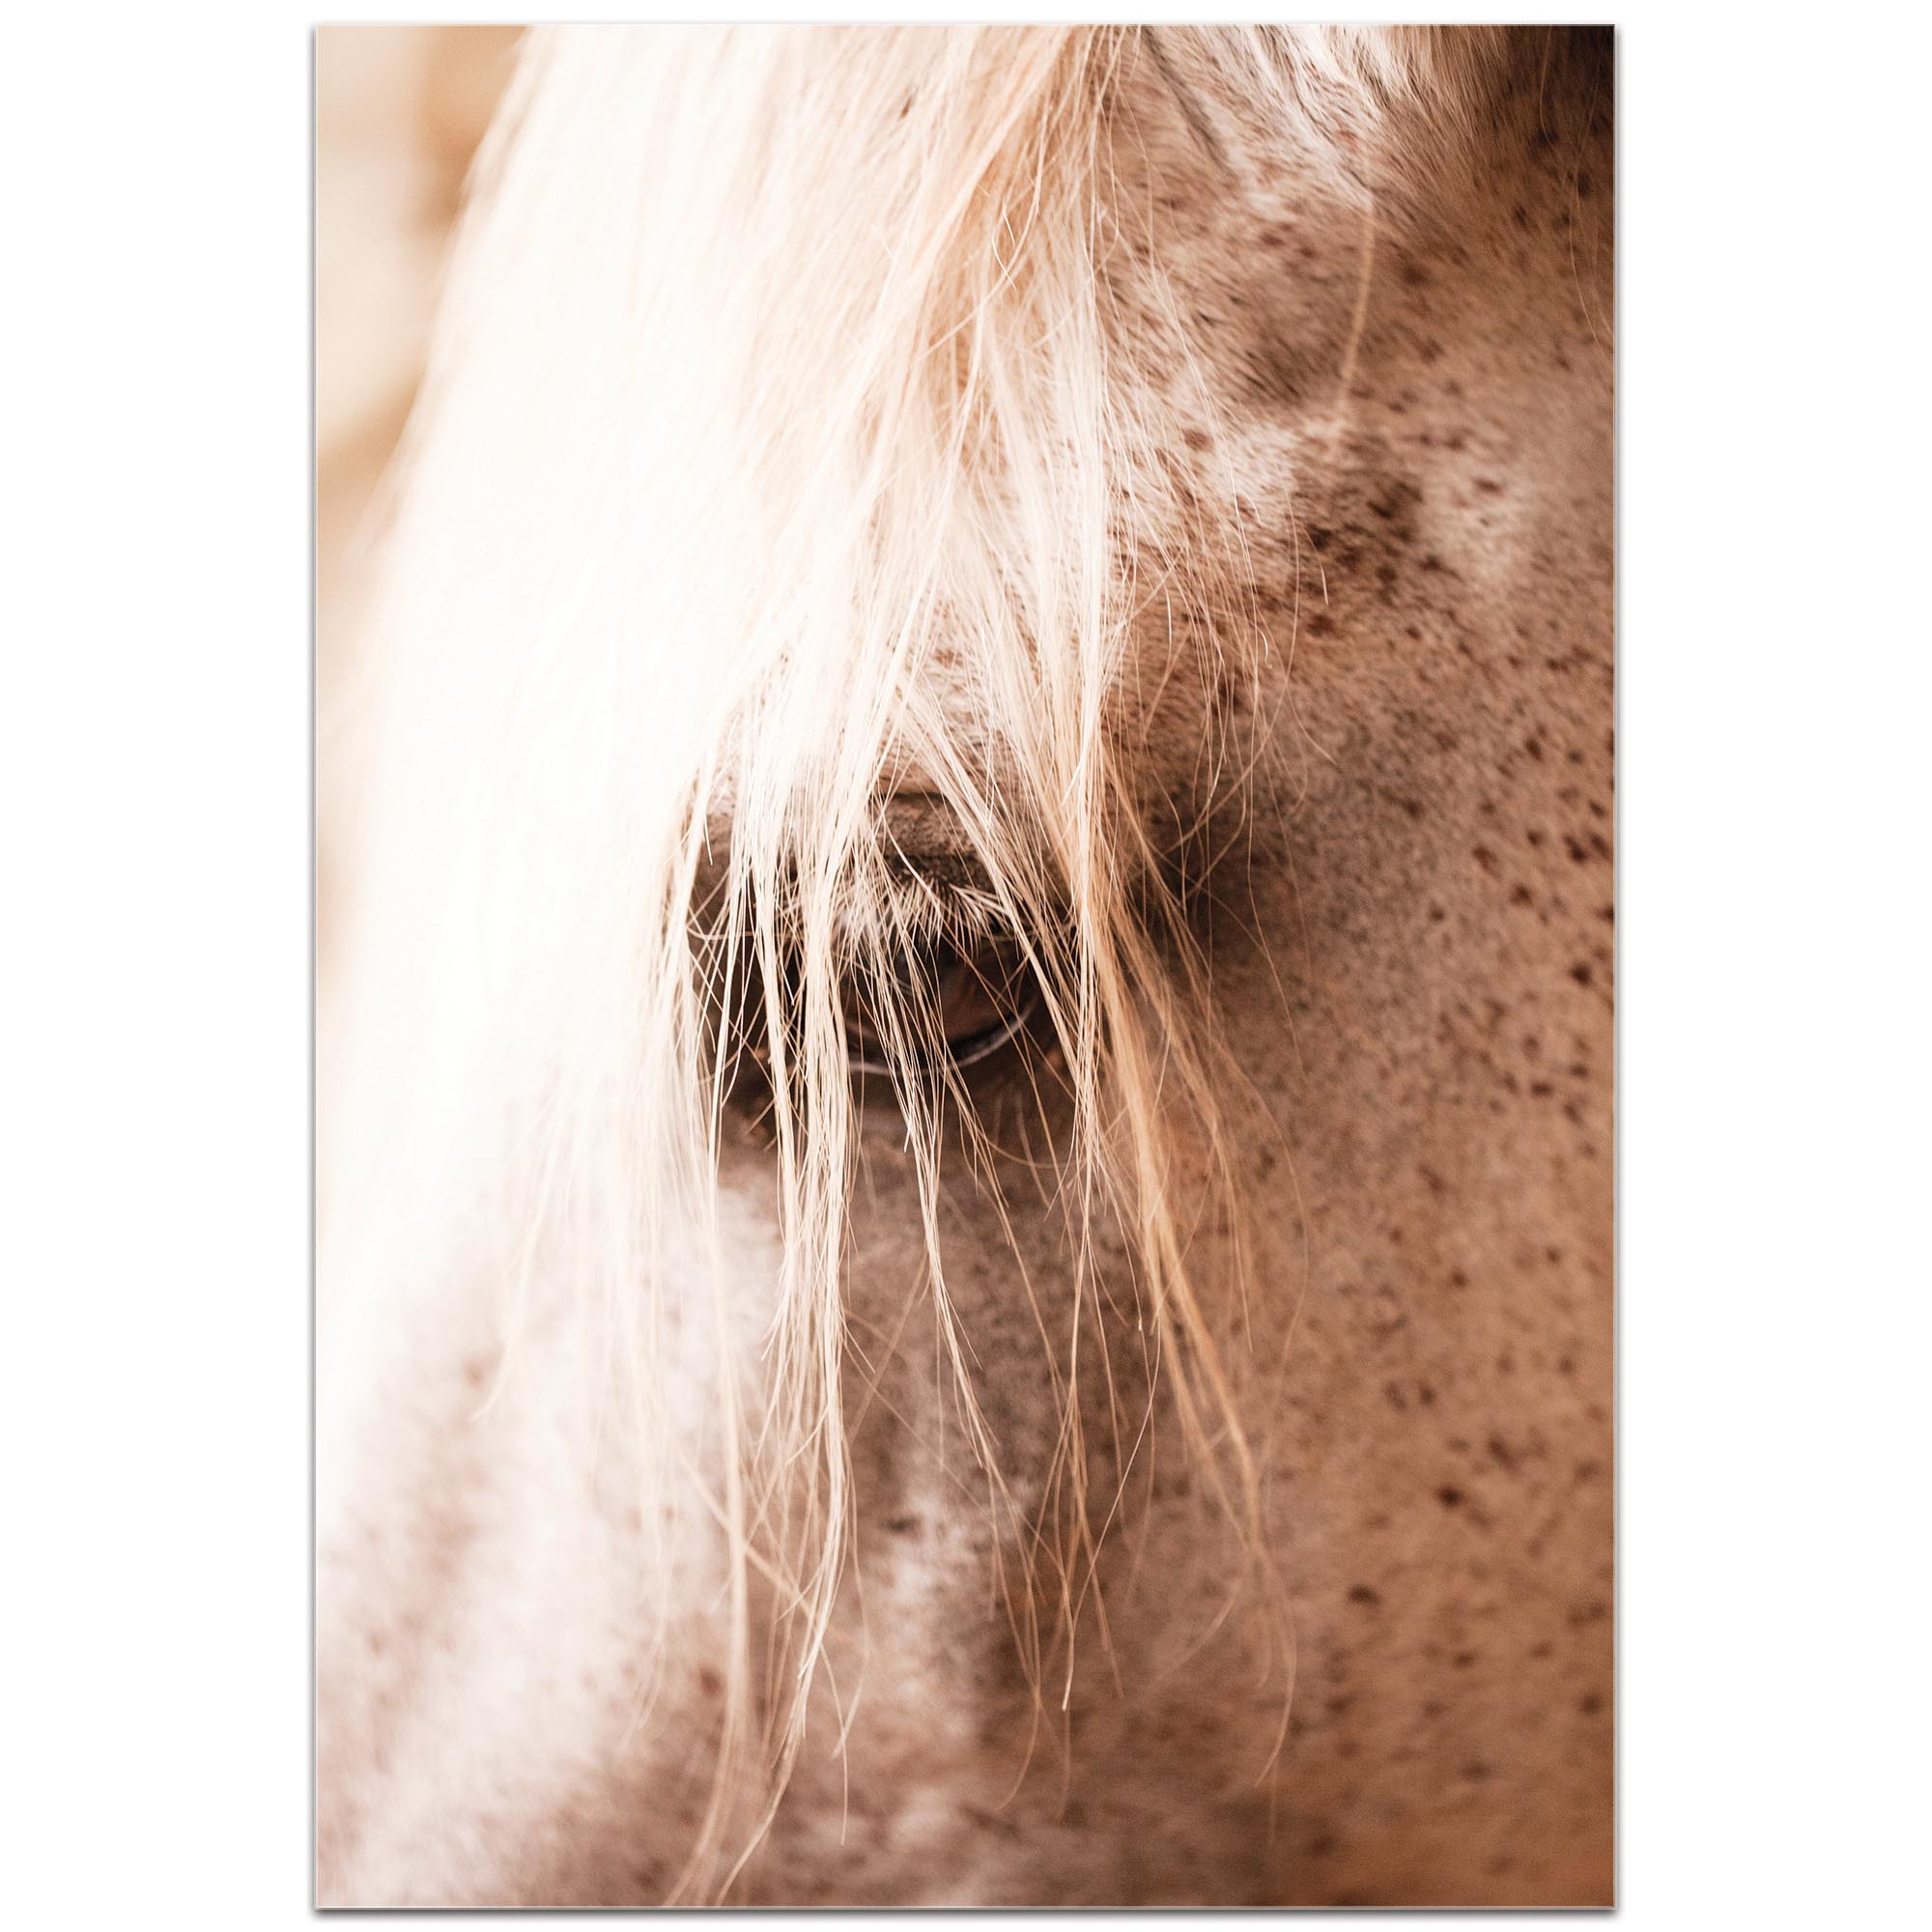 Contemporary Wall Art 'Horse Eye' - Horses Decor on Metal or Plexiglass - Image 2